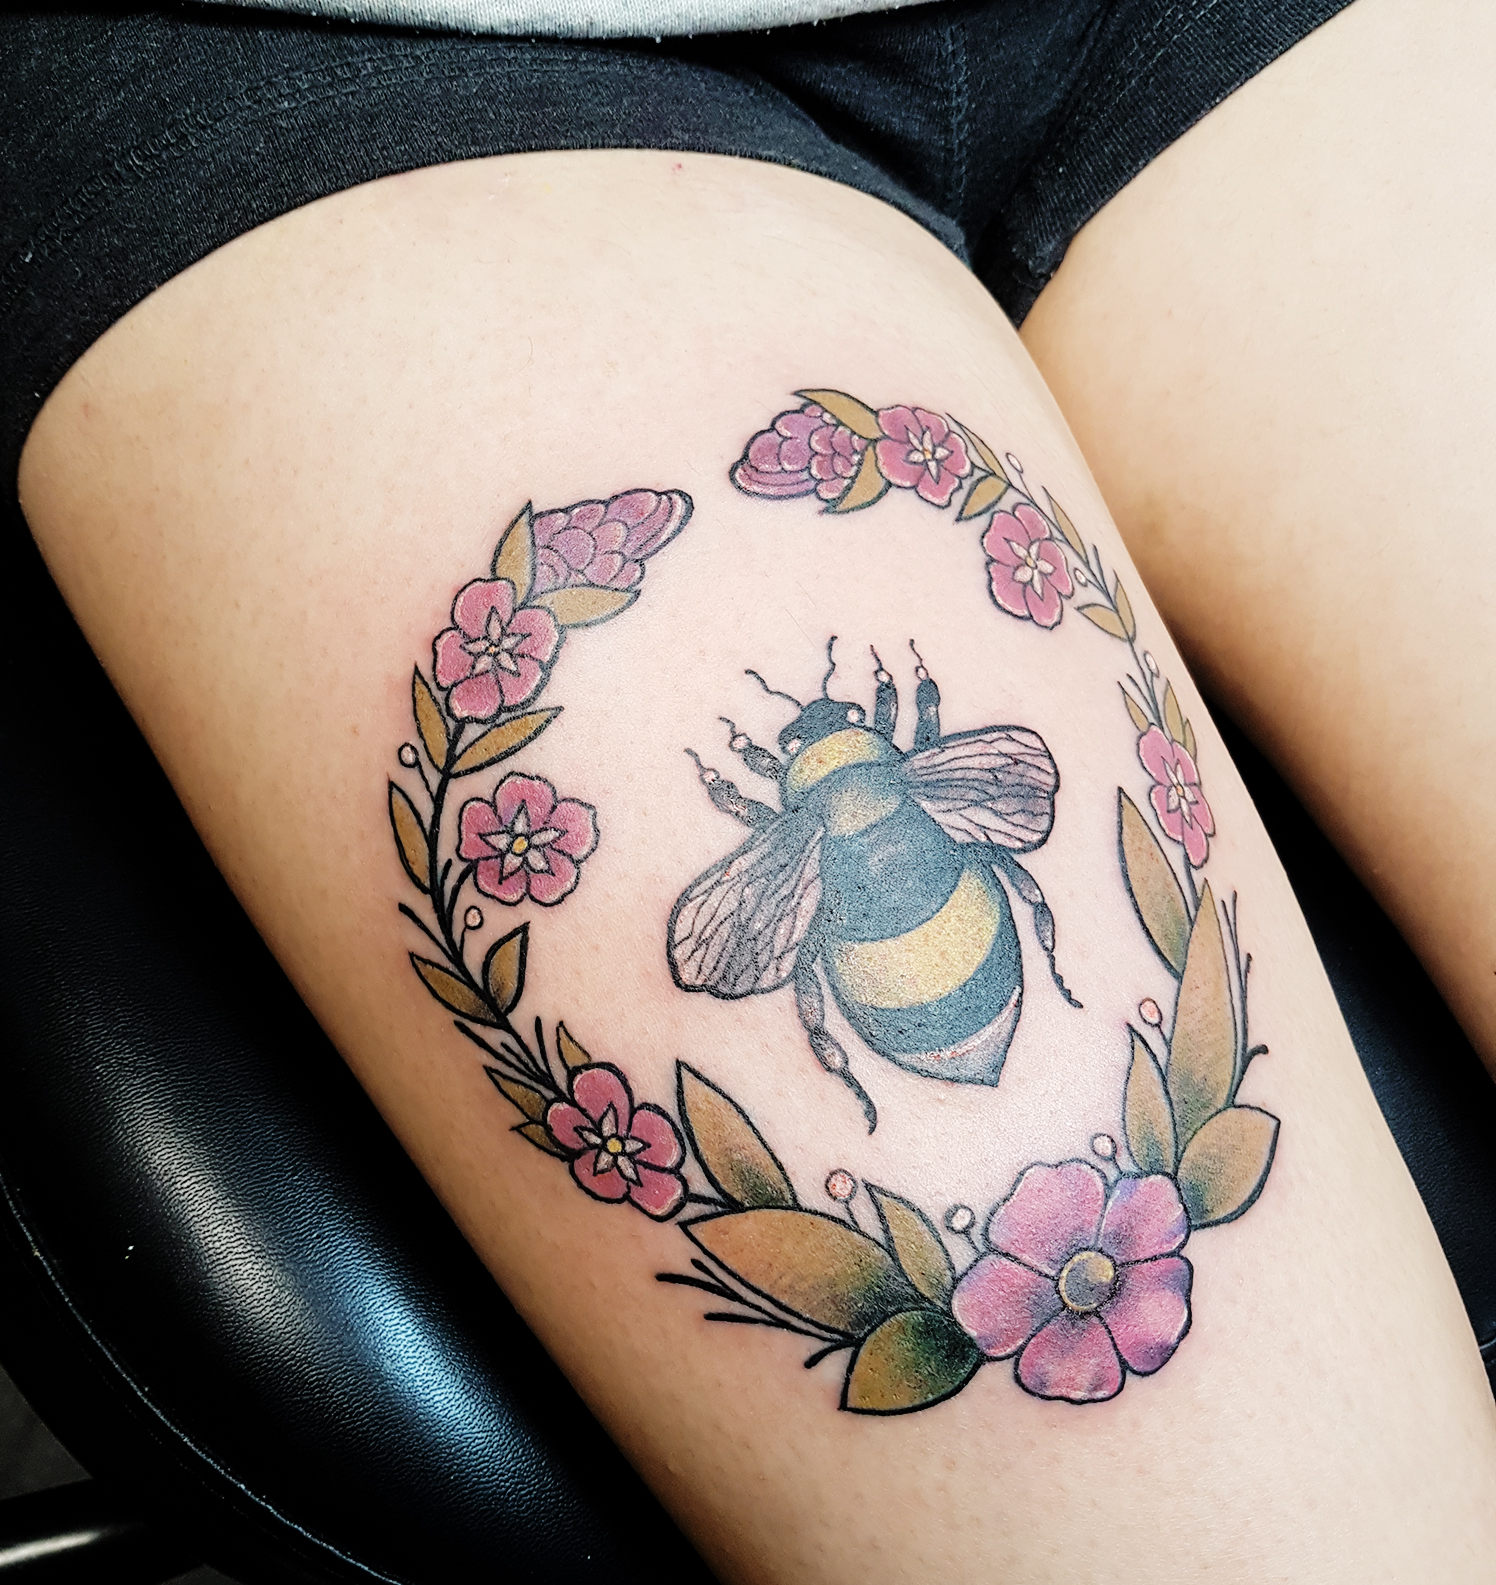 Bumblebee tattoo on leg